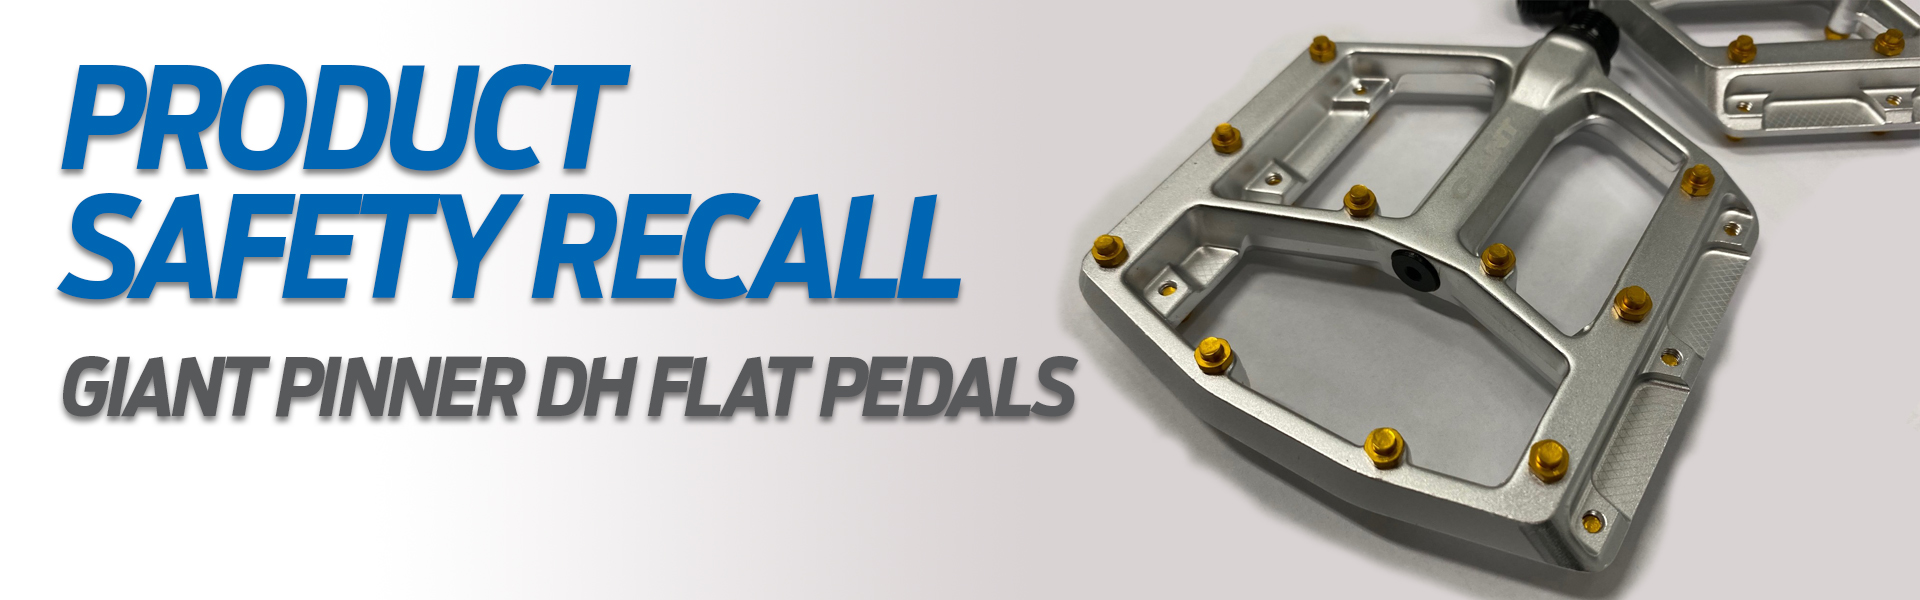 Online Pedal Replacement Request Page